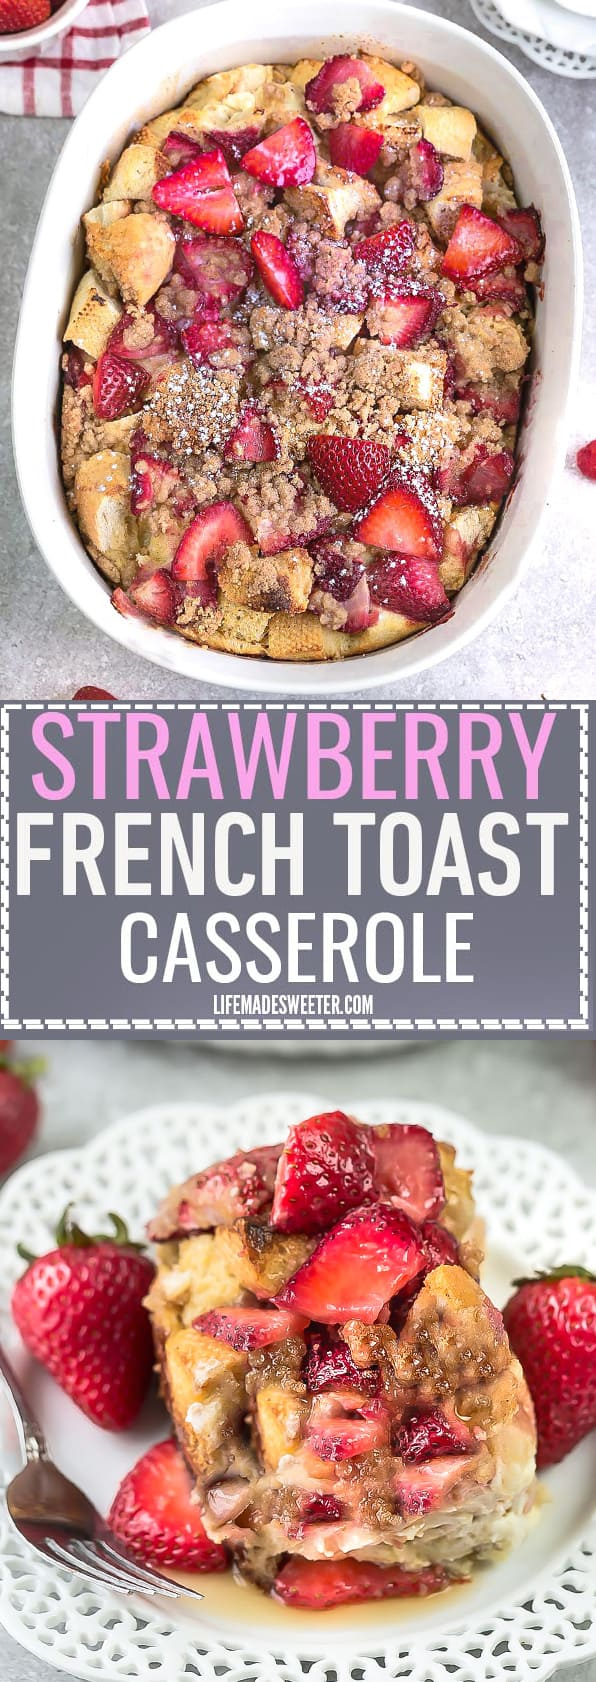 Overnight Strawberry Cream Cheese French Toast Bake Casserole Bake makes the perfect, easy and delicious breakfast, brunch or dessert. A great recipe to add to Mother's Day, Easter, Fourth of July or any special weekend occasion.